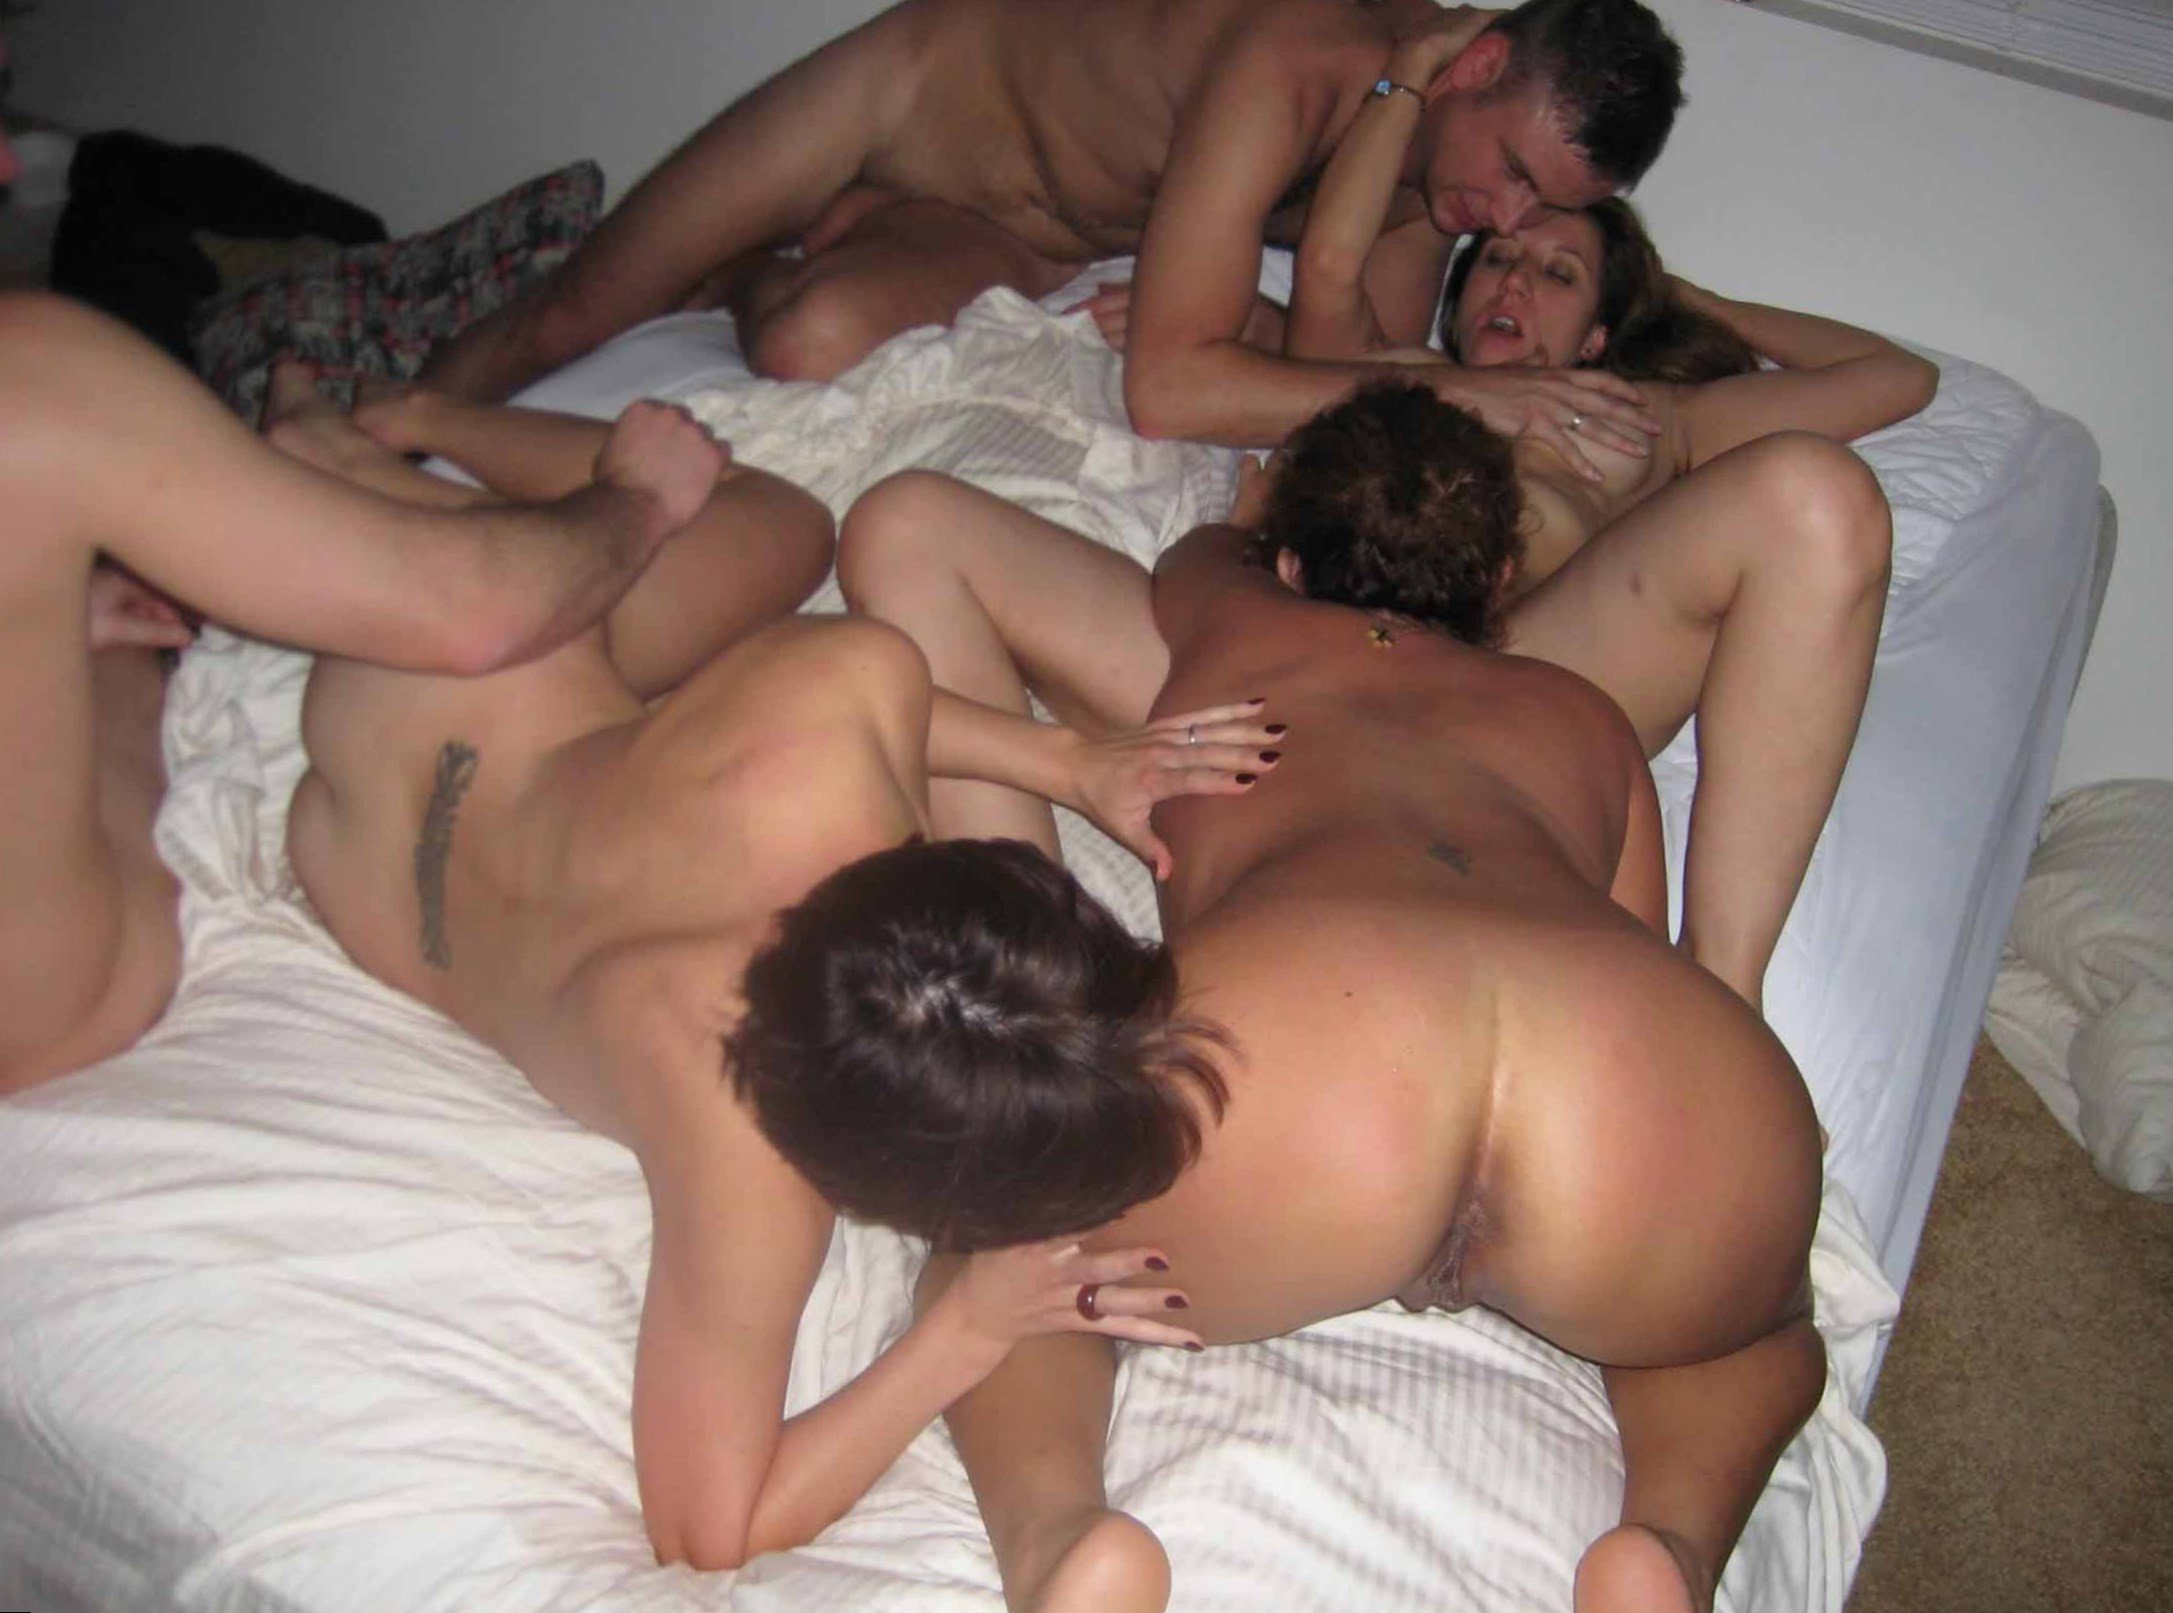 swingers-homemade-sex-videos